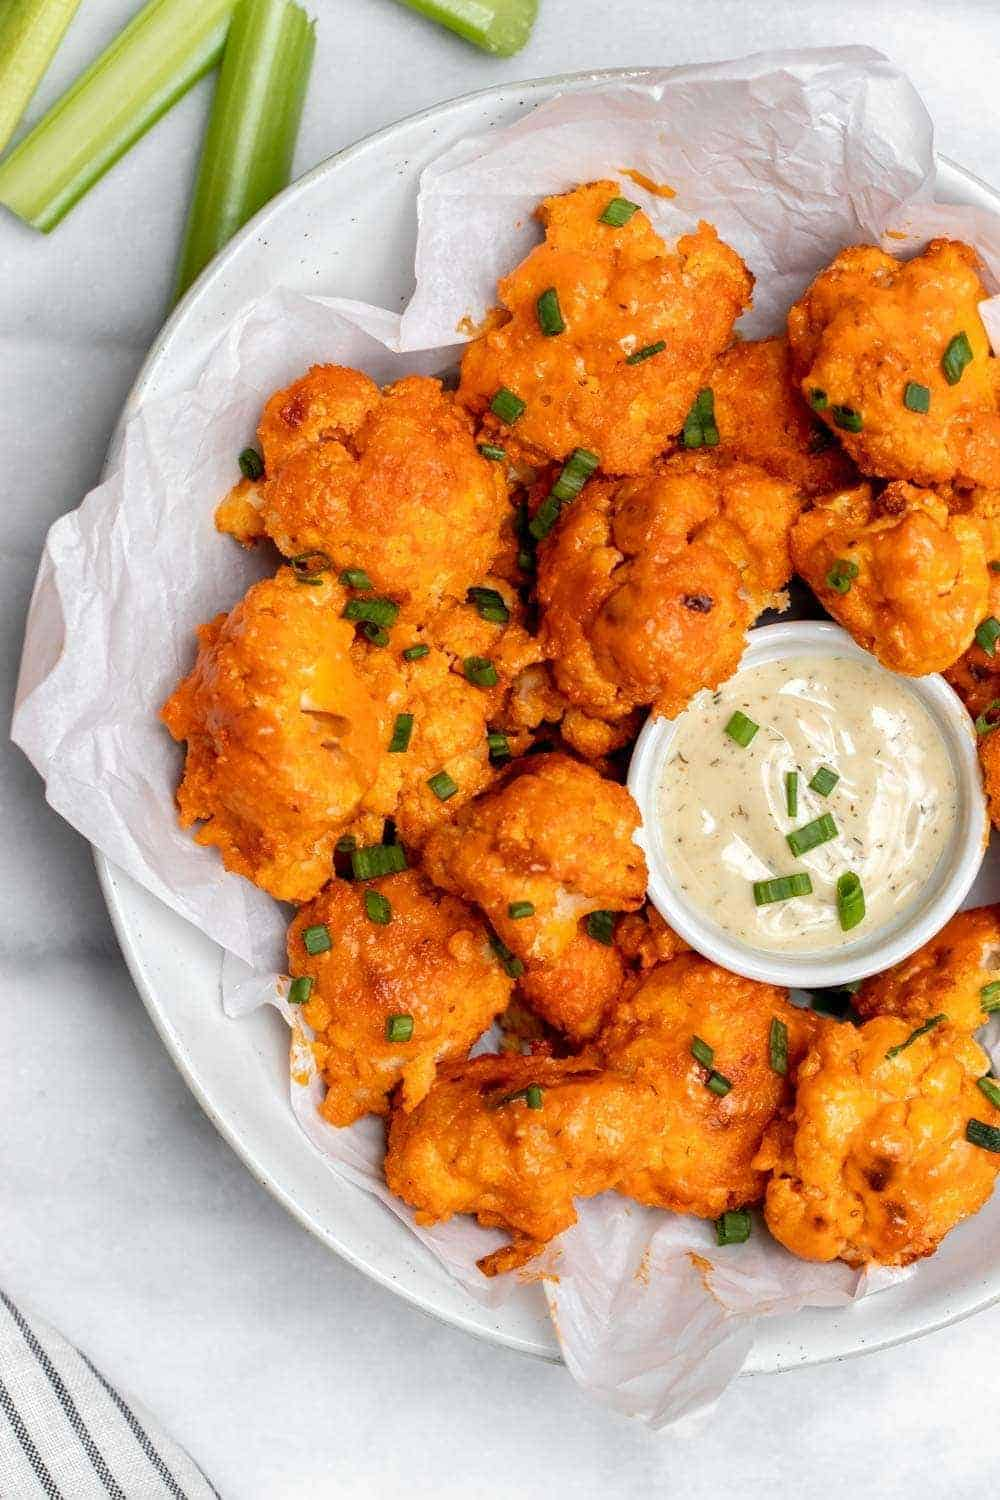 Baked buffalo cauliflower with chives on top in a large bowl.